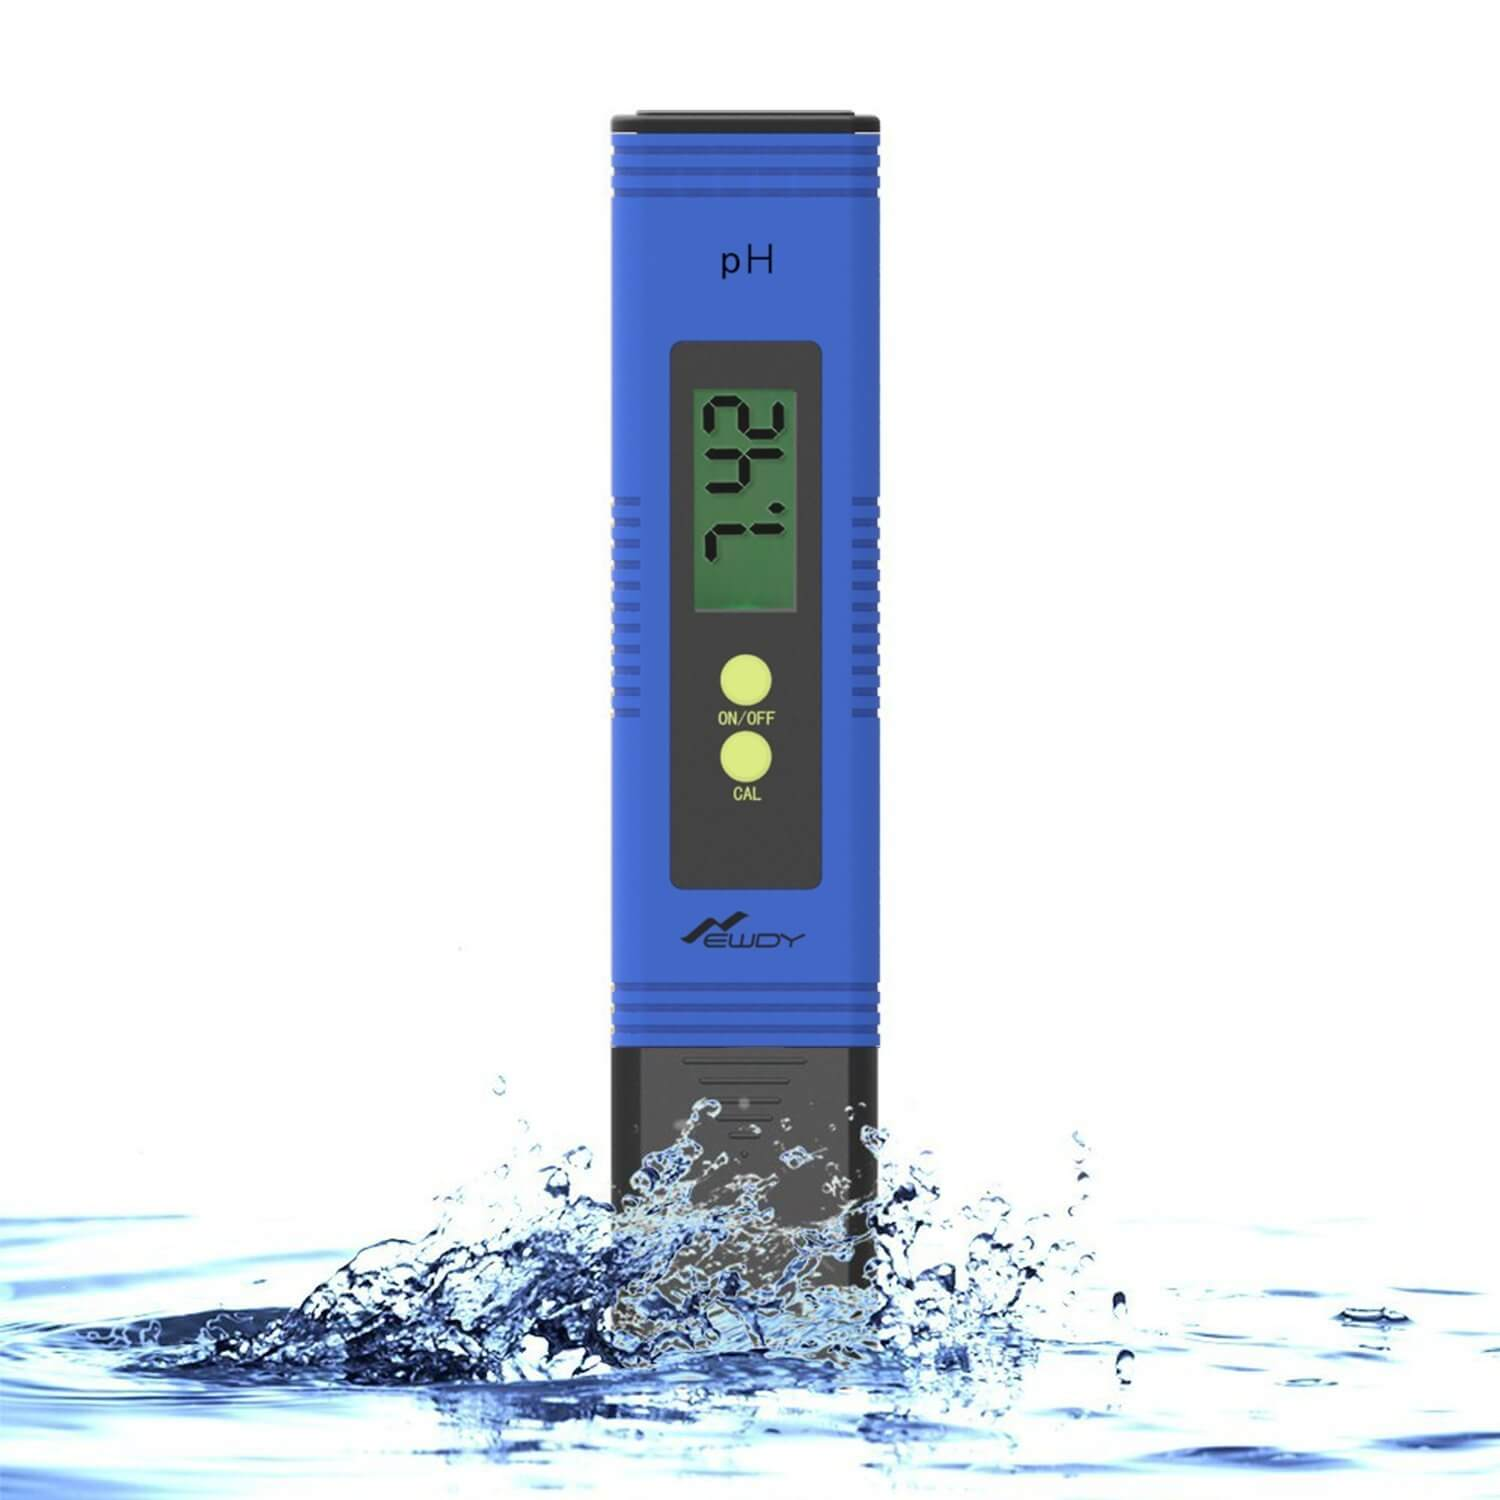 Newdy Digital PH Meter